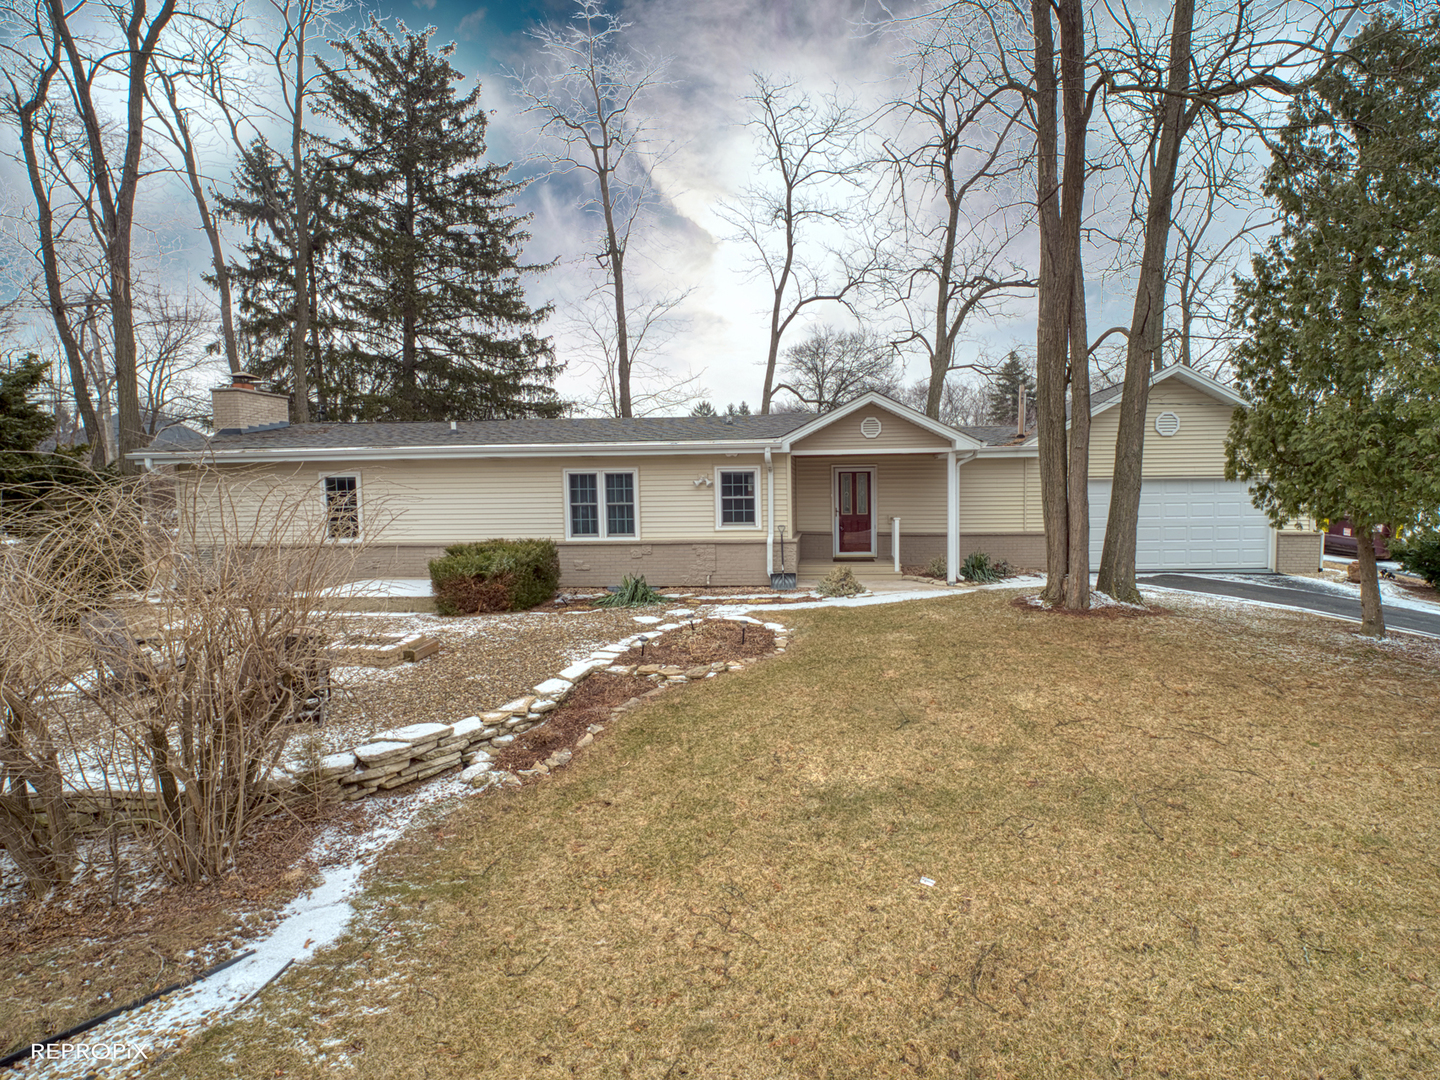 PropertyUP[10027828]|sale|779 Harding Glen ellyn, Illinois 60137